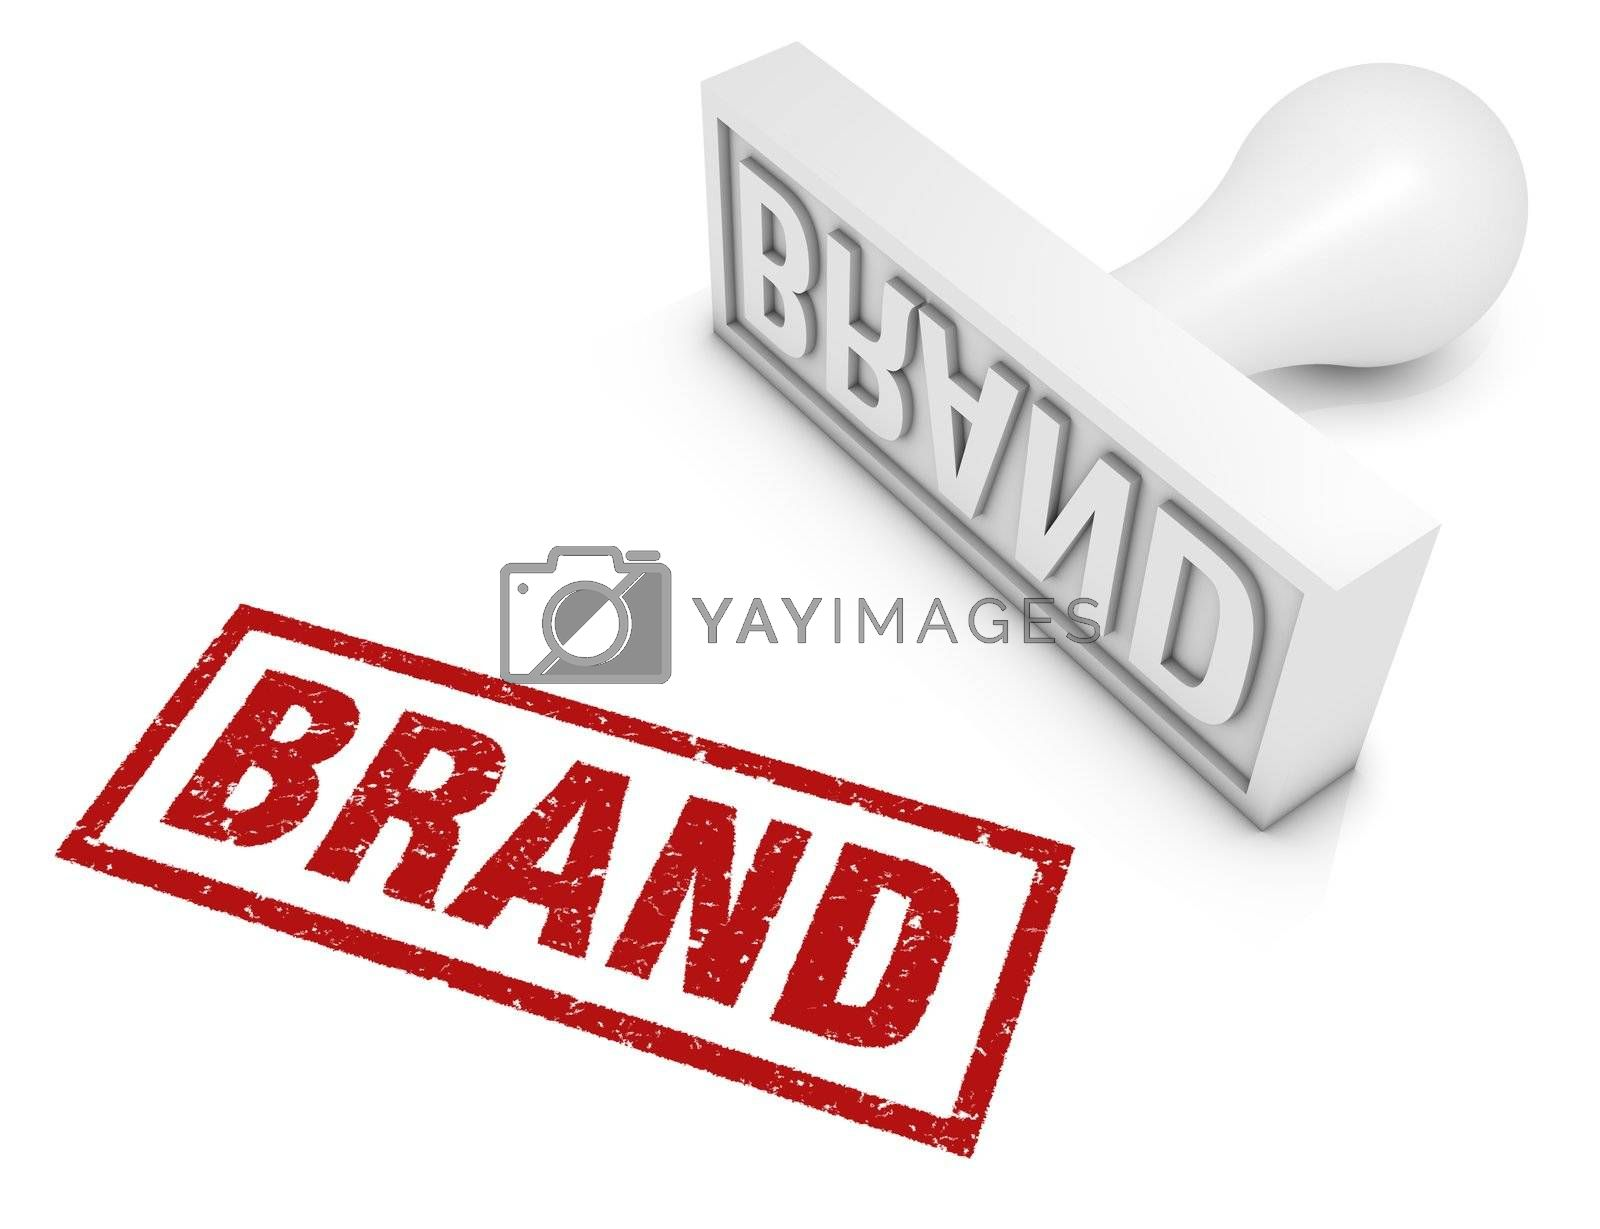 Brand rubber stamp. Part of a series of business concepts.